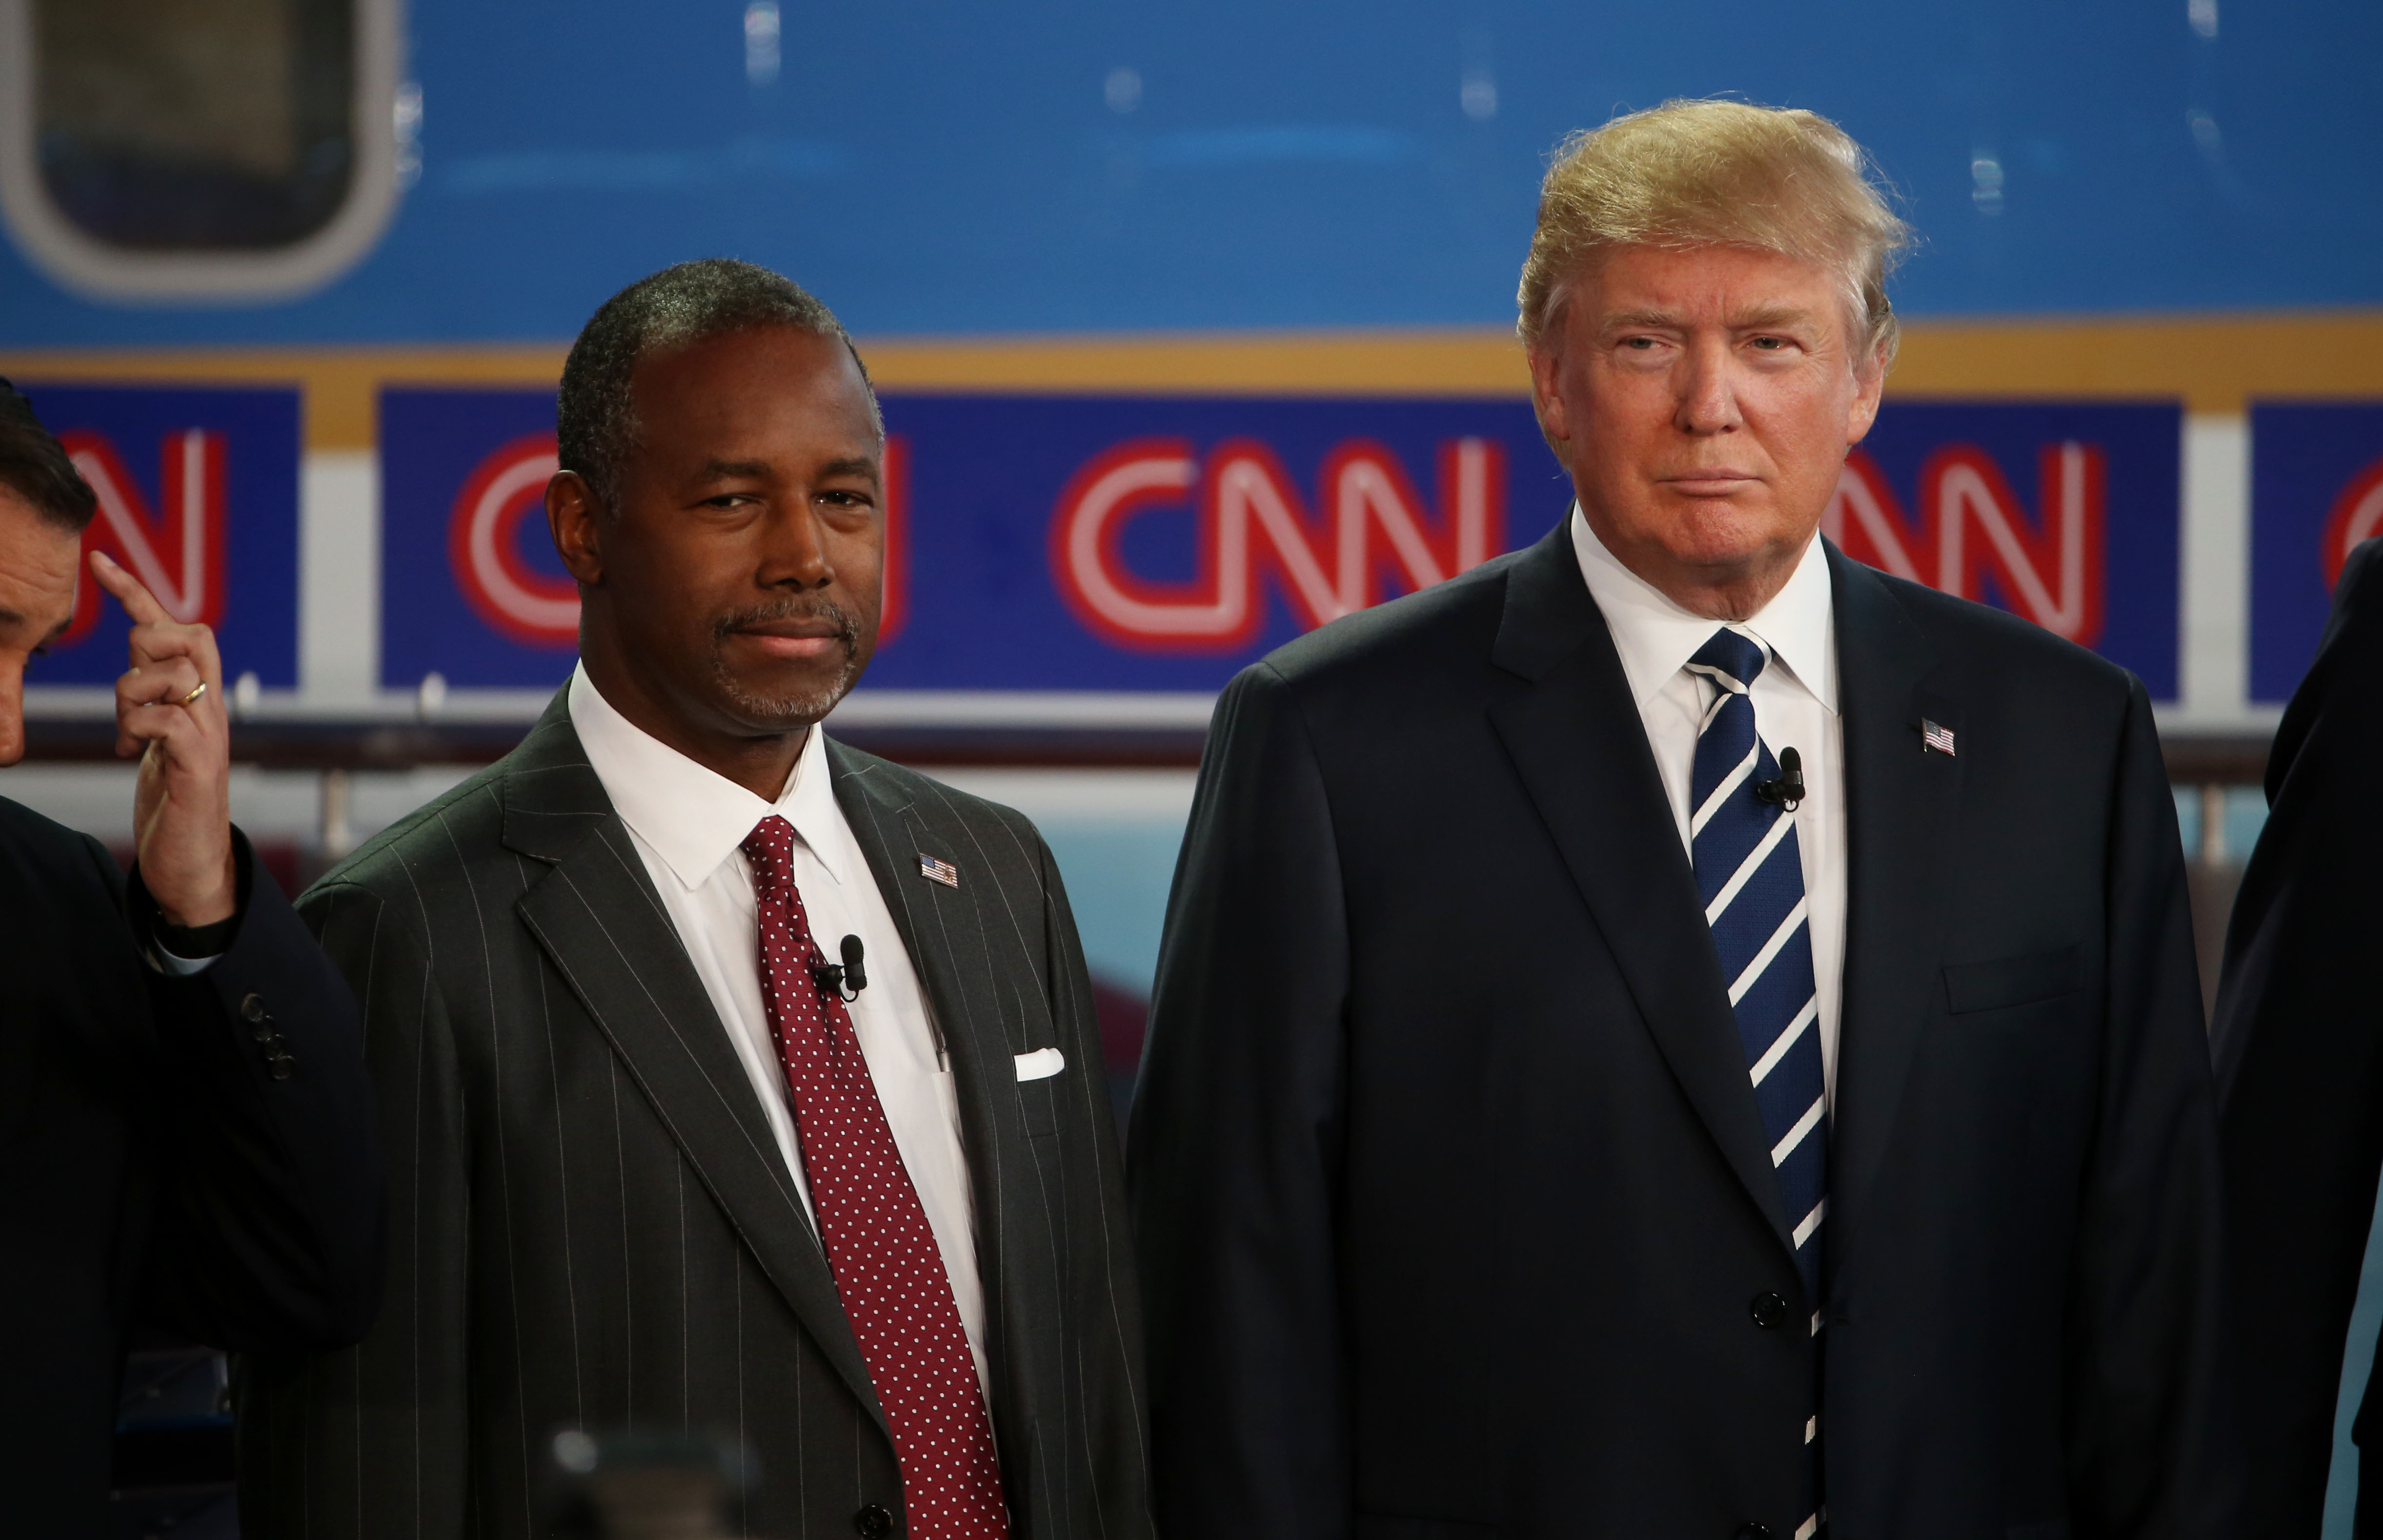 New Poll Says Carson Is the Favorite for Trump's Potential VP Pick